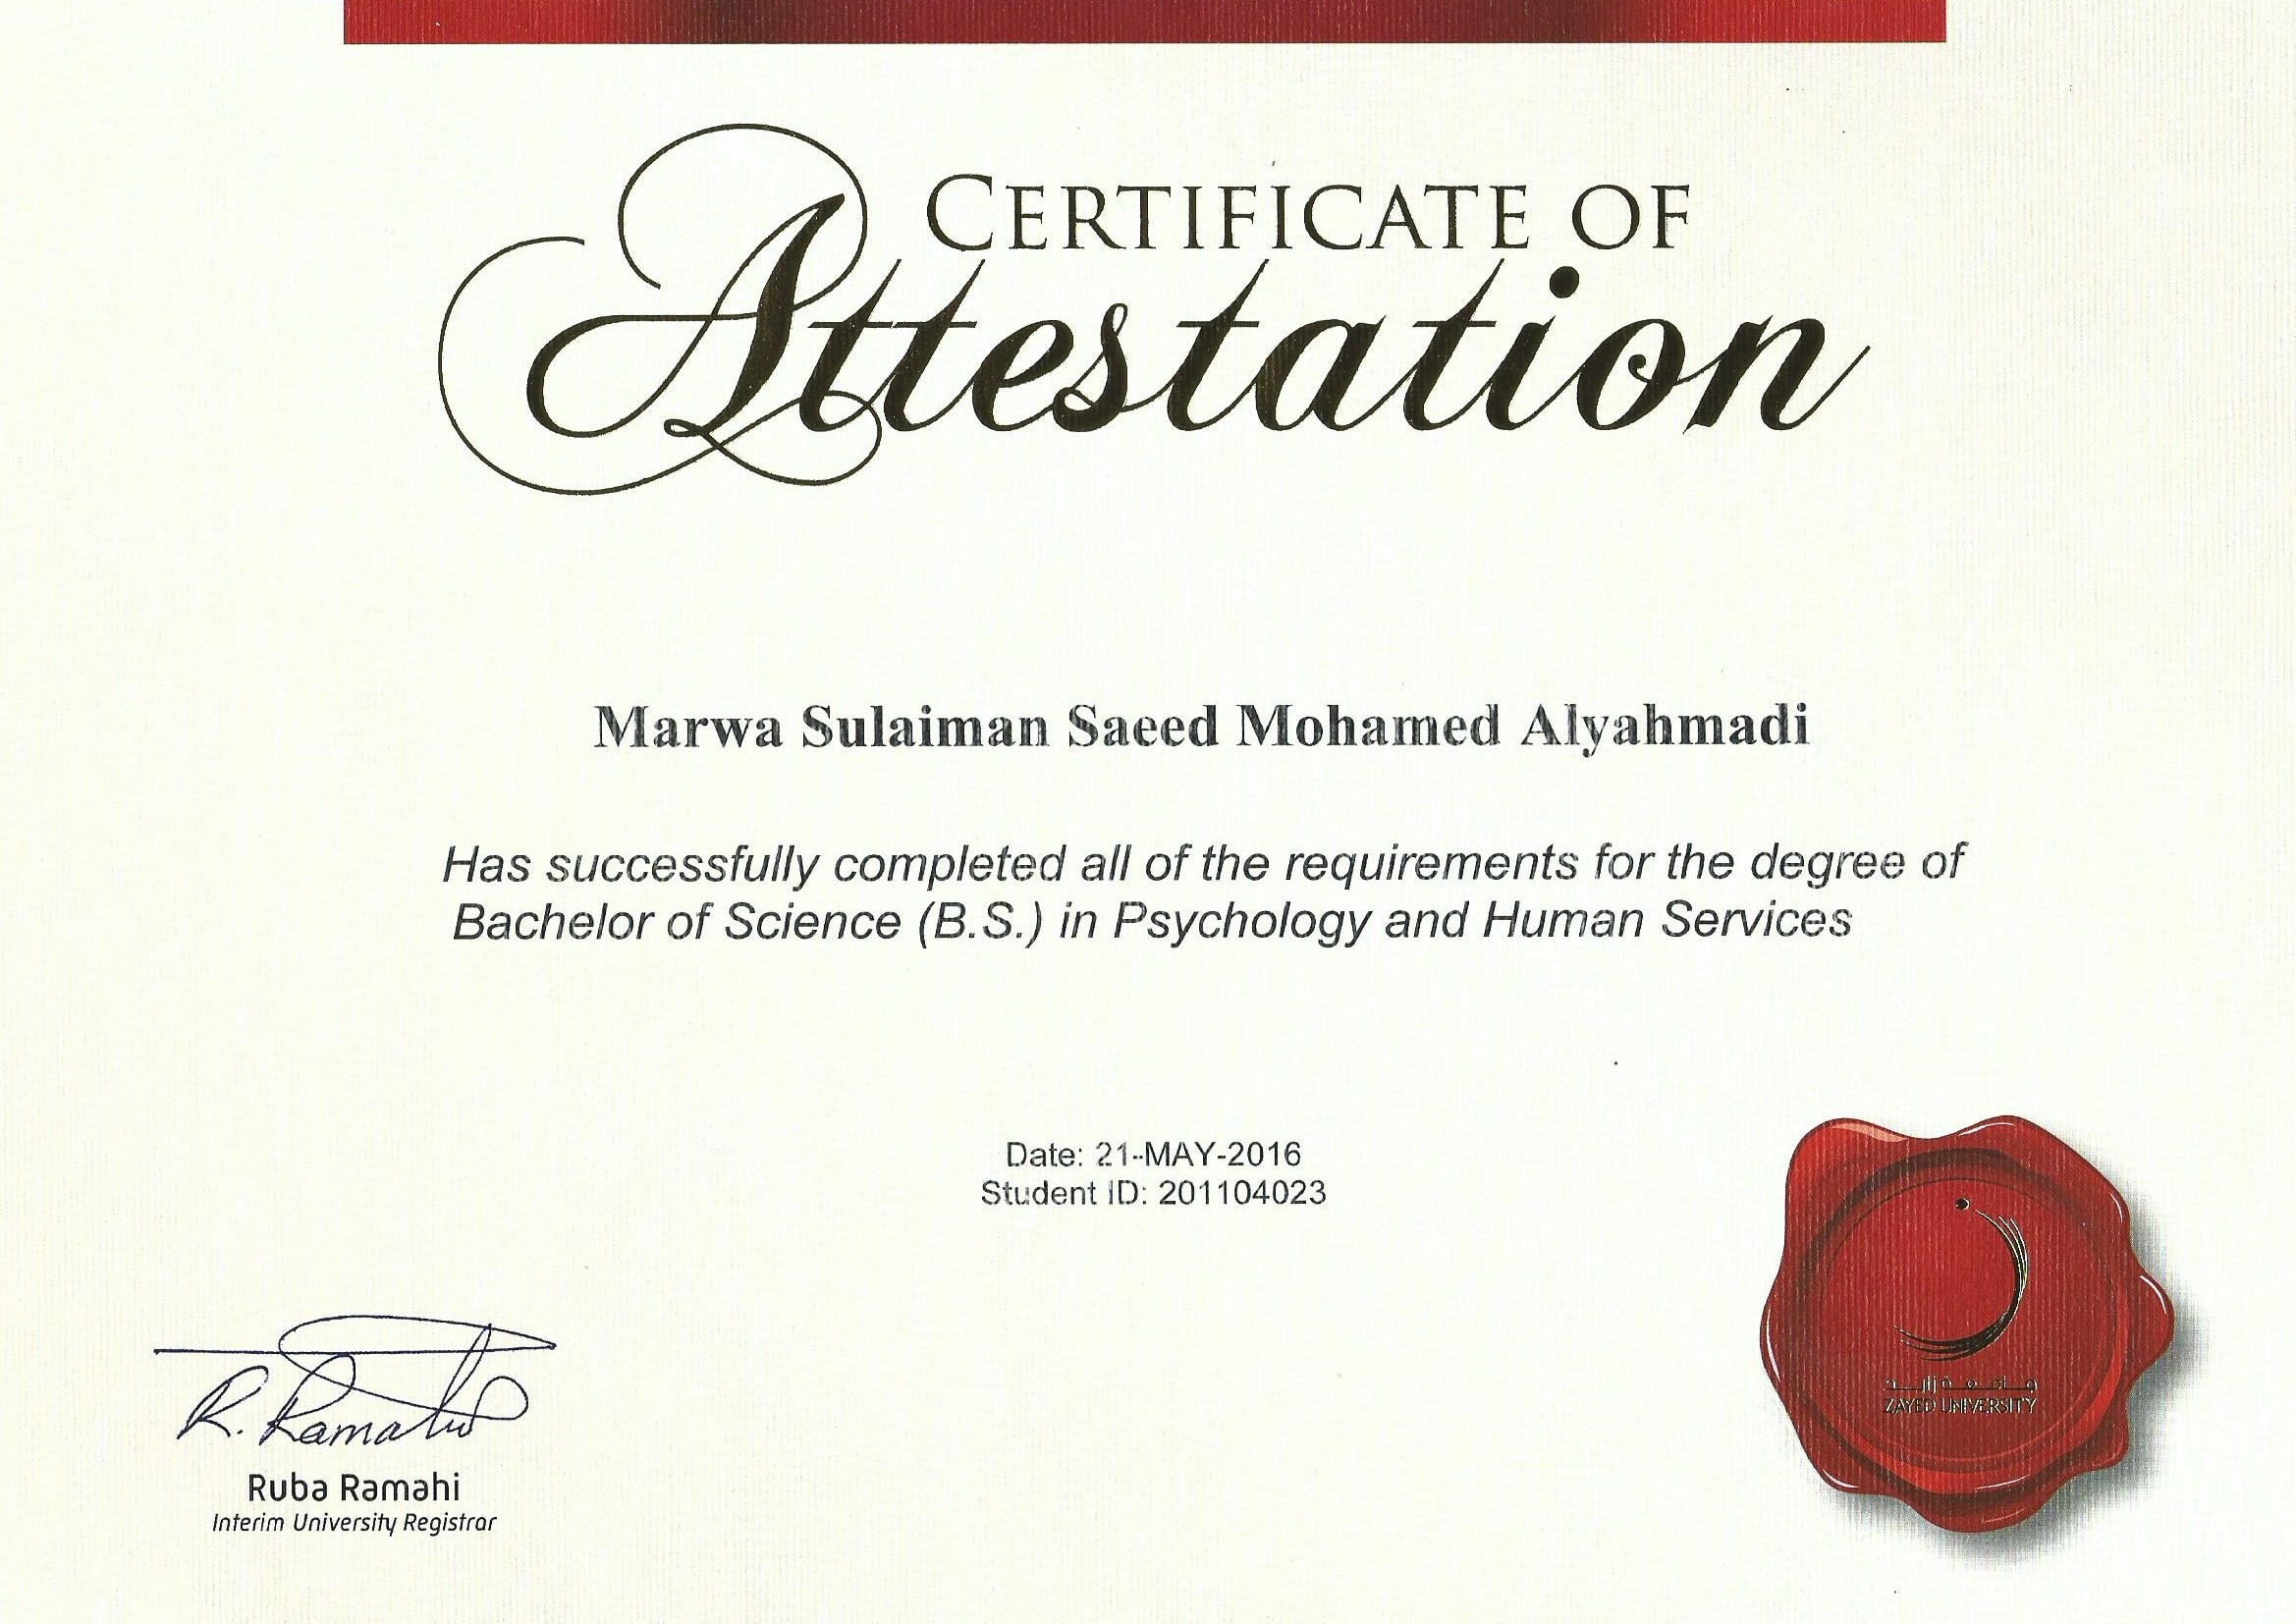 Marwa alyahmadi bayt bachelor of psychology and human services certificate xflitez Image collections